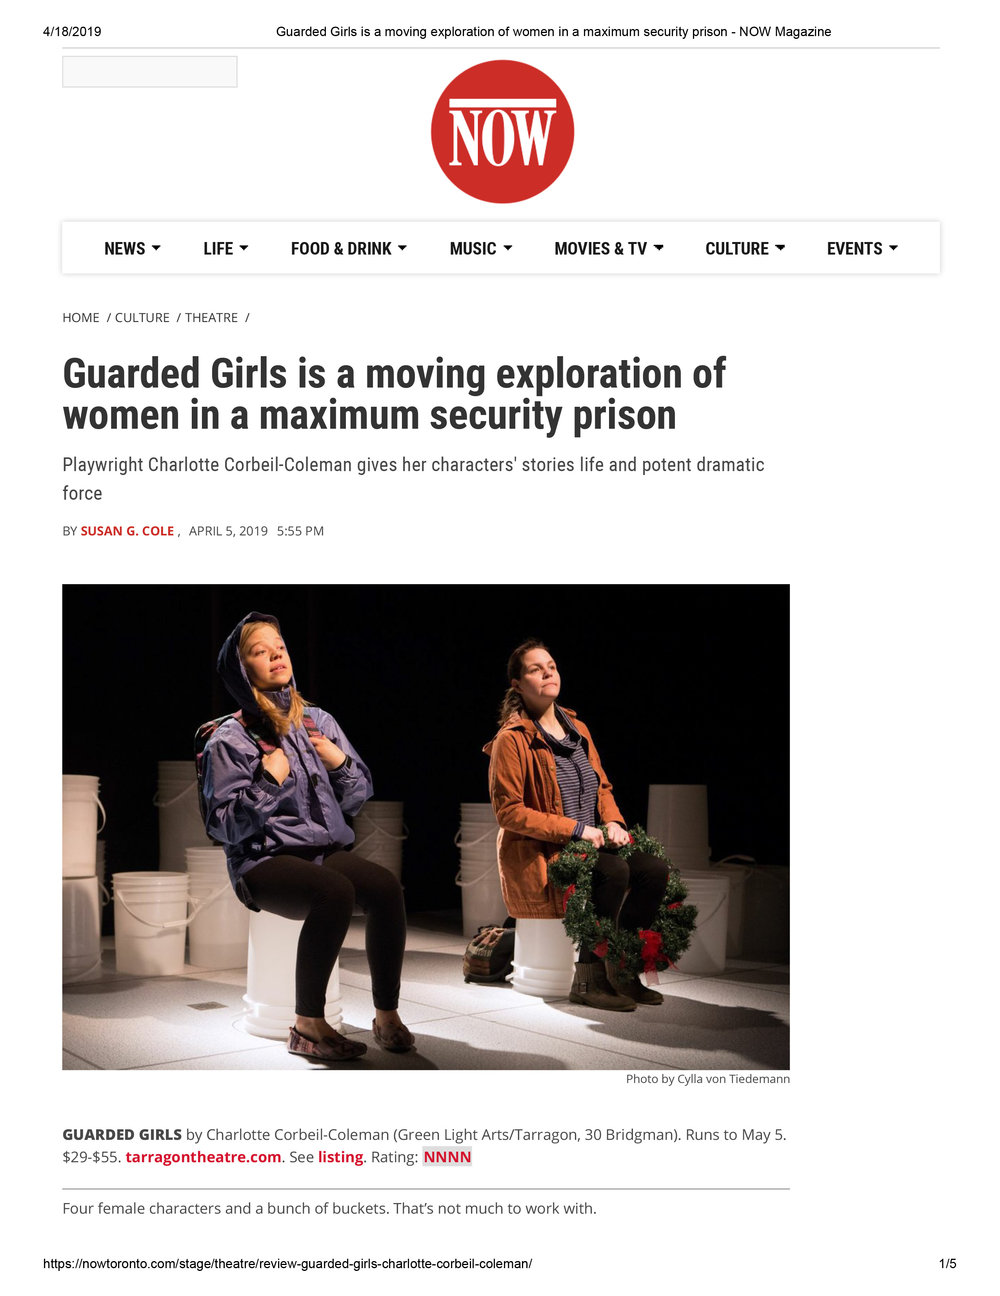 Guarded Girls is a moving exploration of women in a maximum security prison - NOW Magazine.jpg